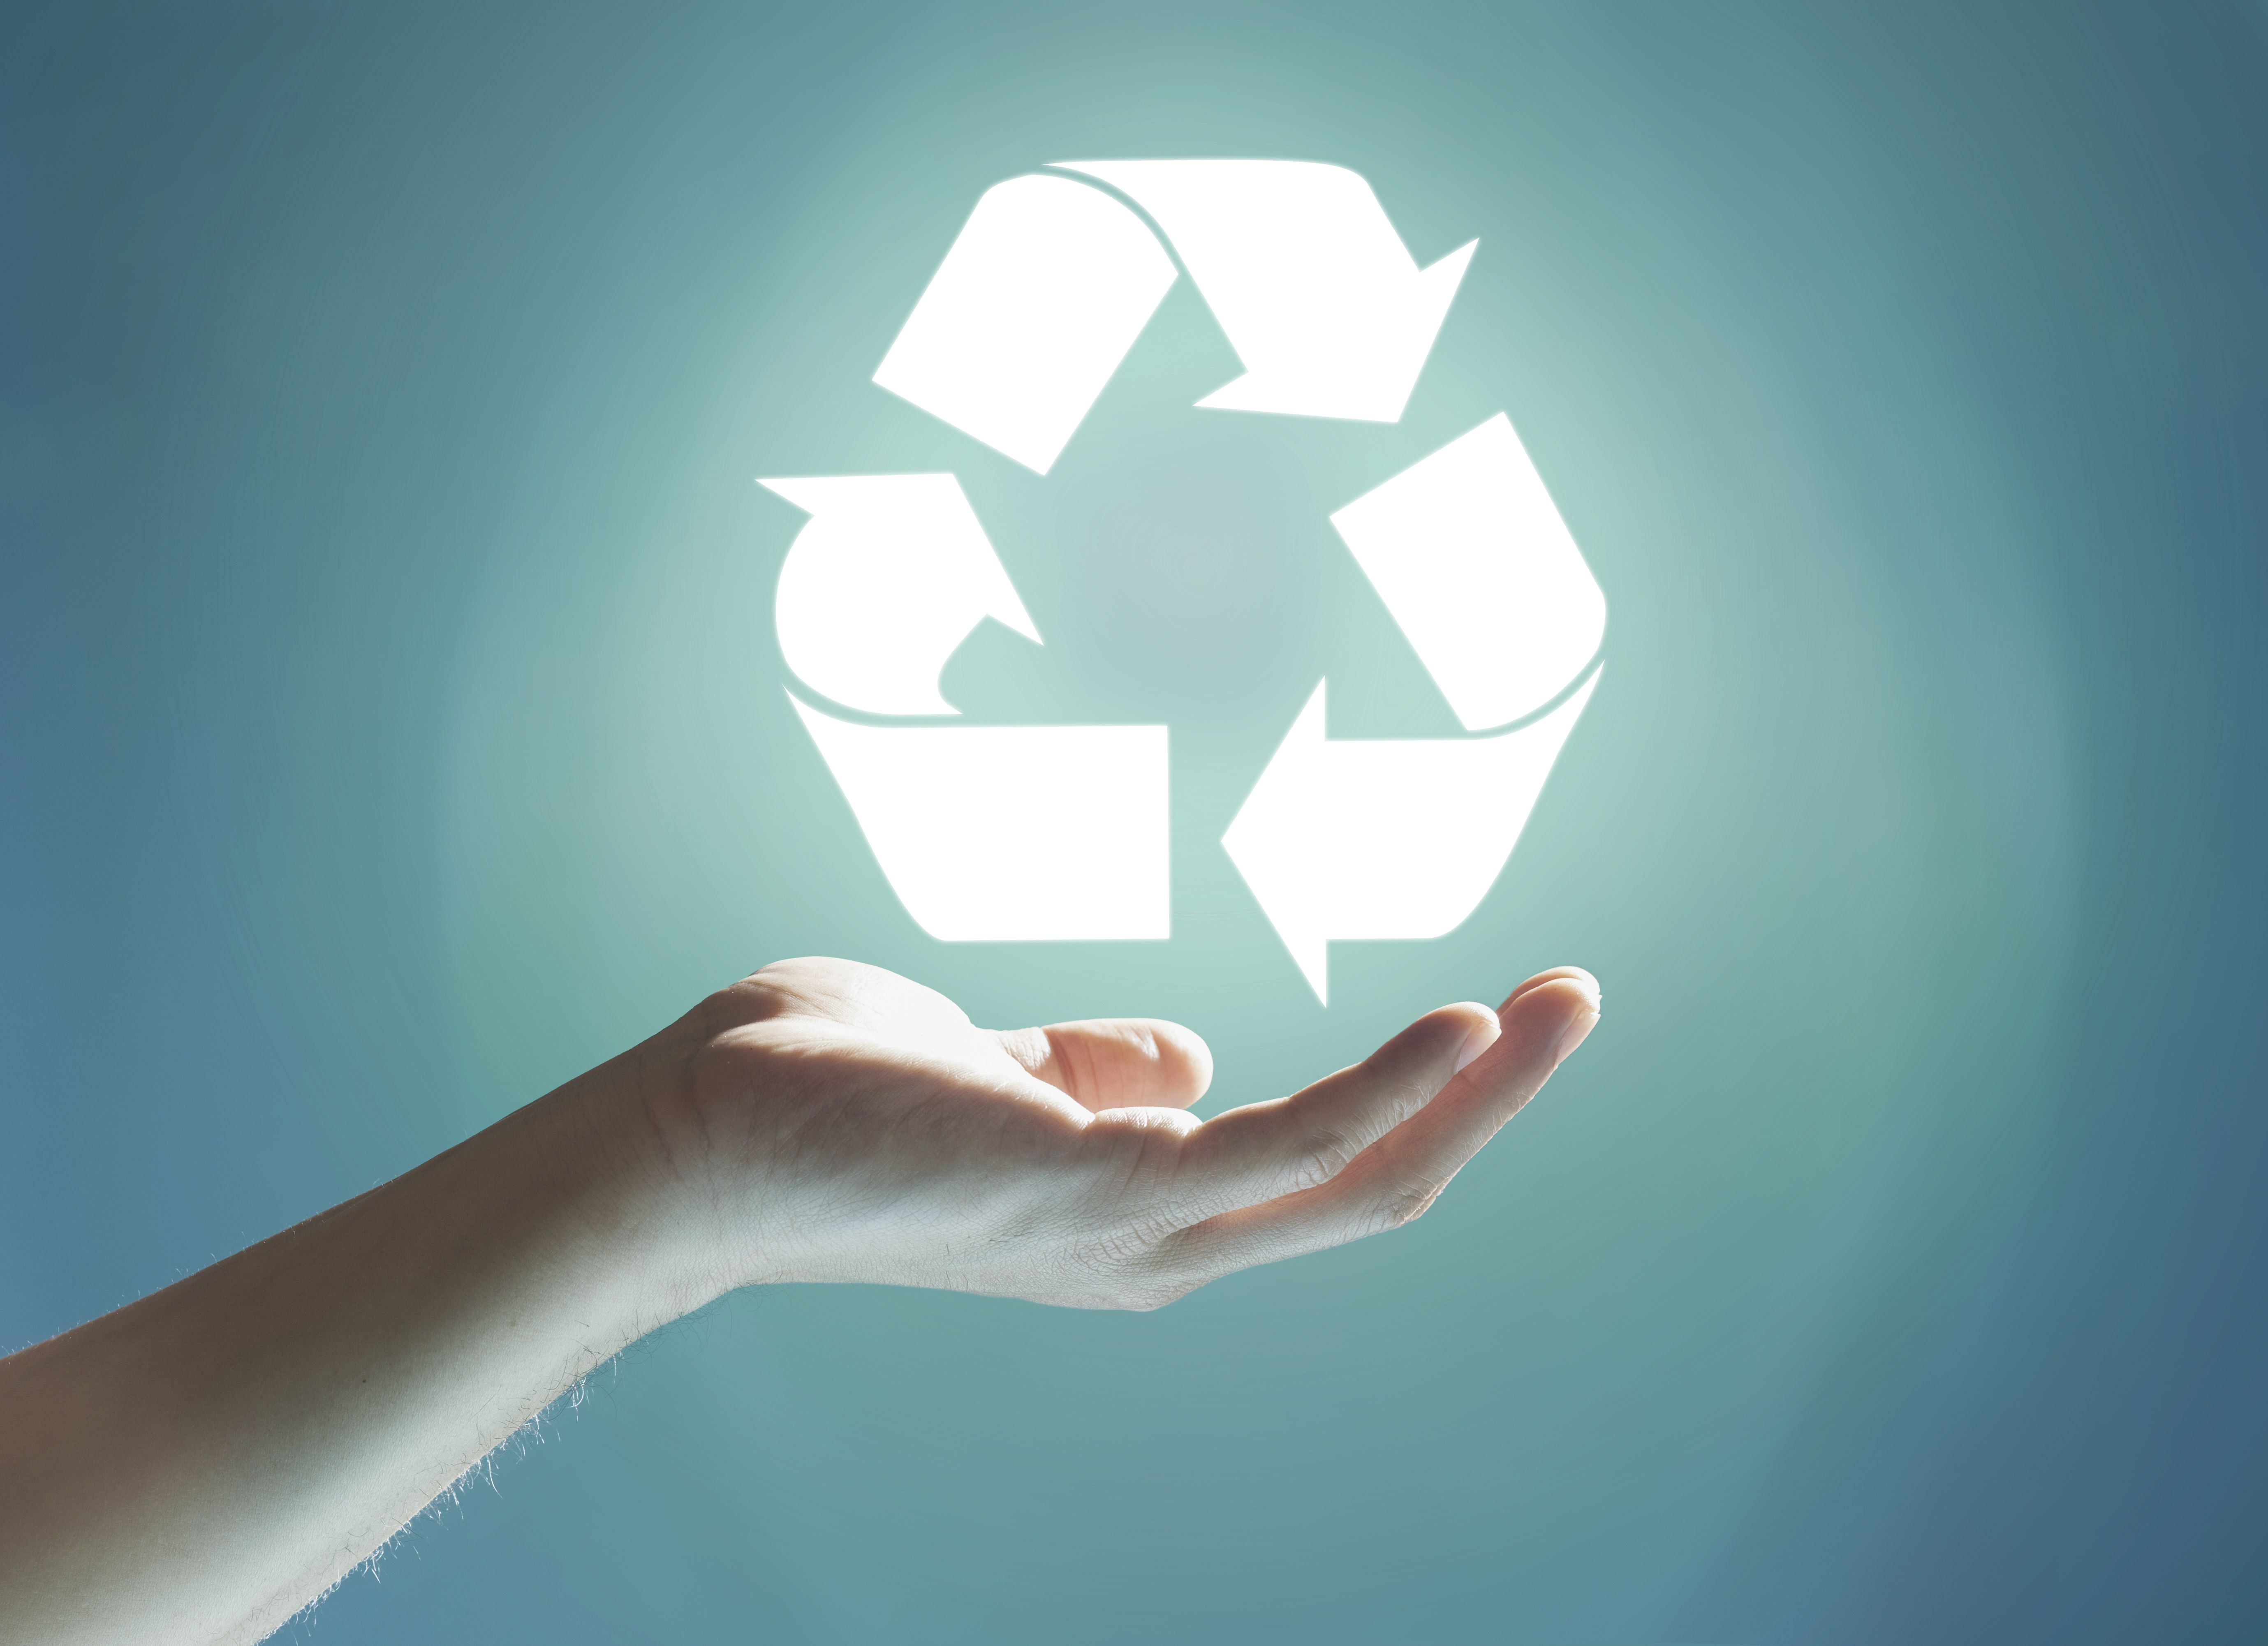 What Do Recycling Symbols Mean